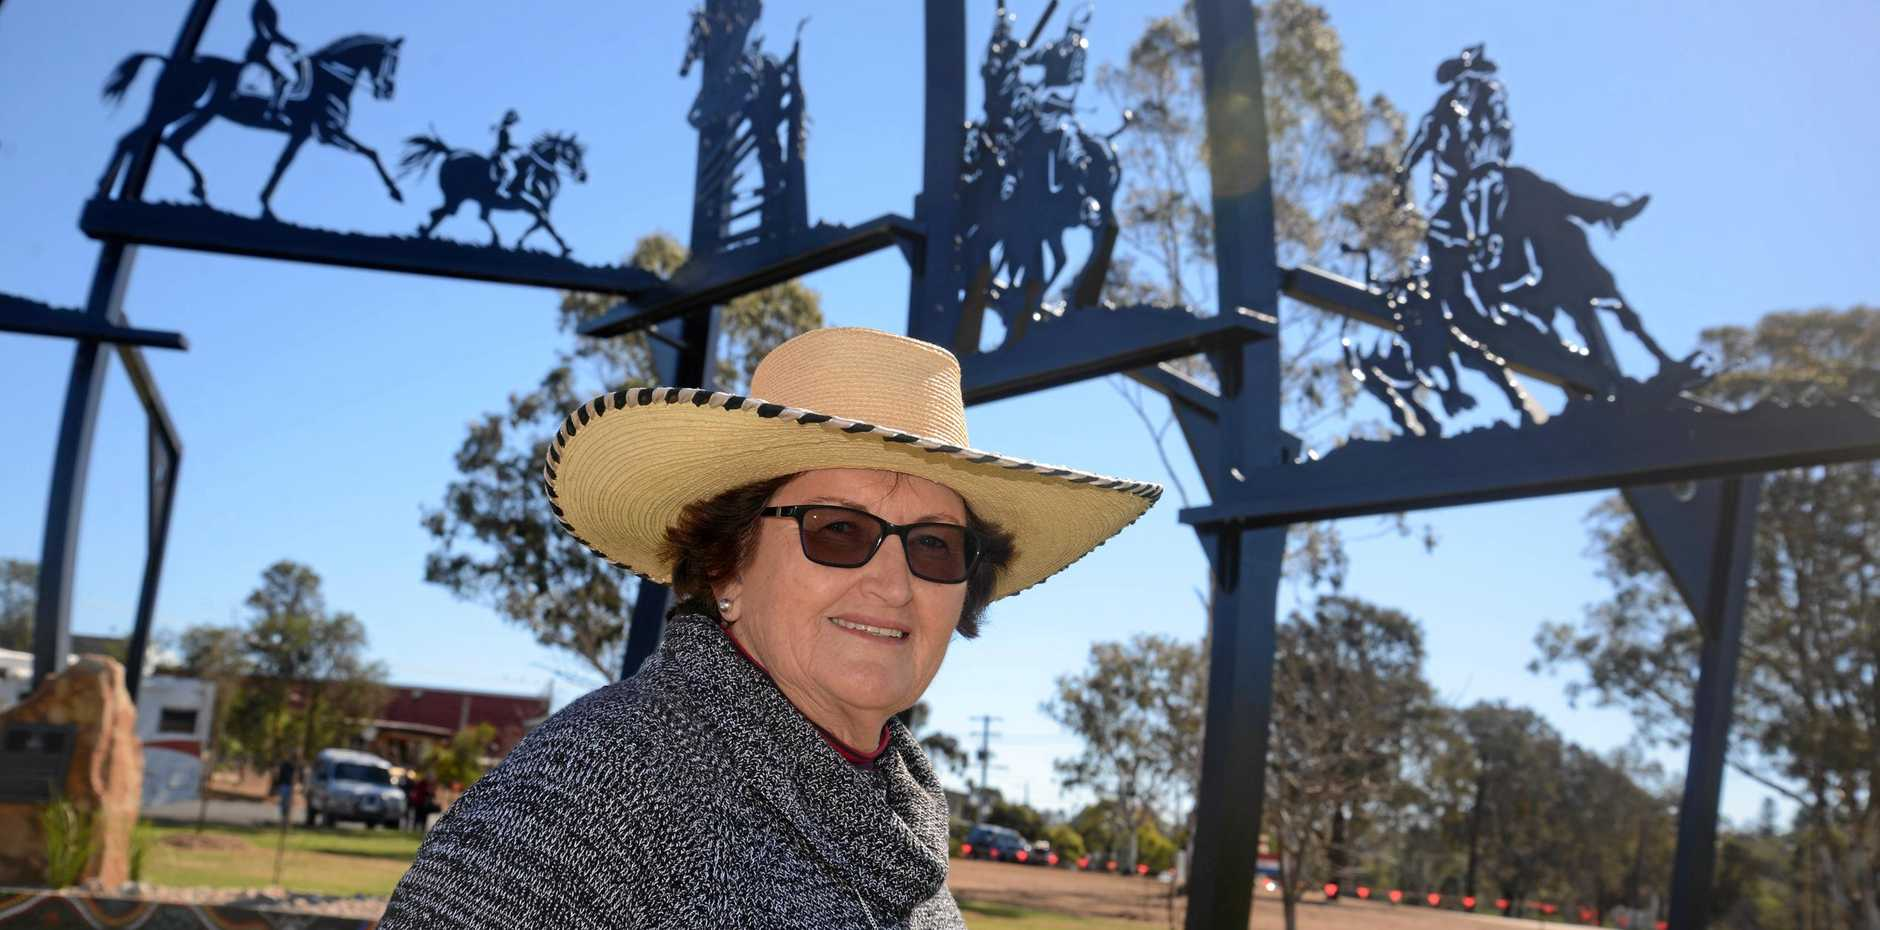 New Australian Stock Horse Society national chairperson Lorna Fanning at the Warwick Sculpture of the Horse